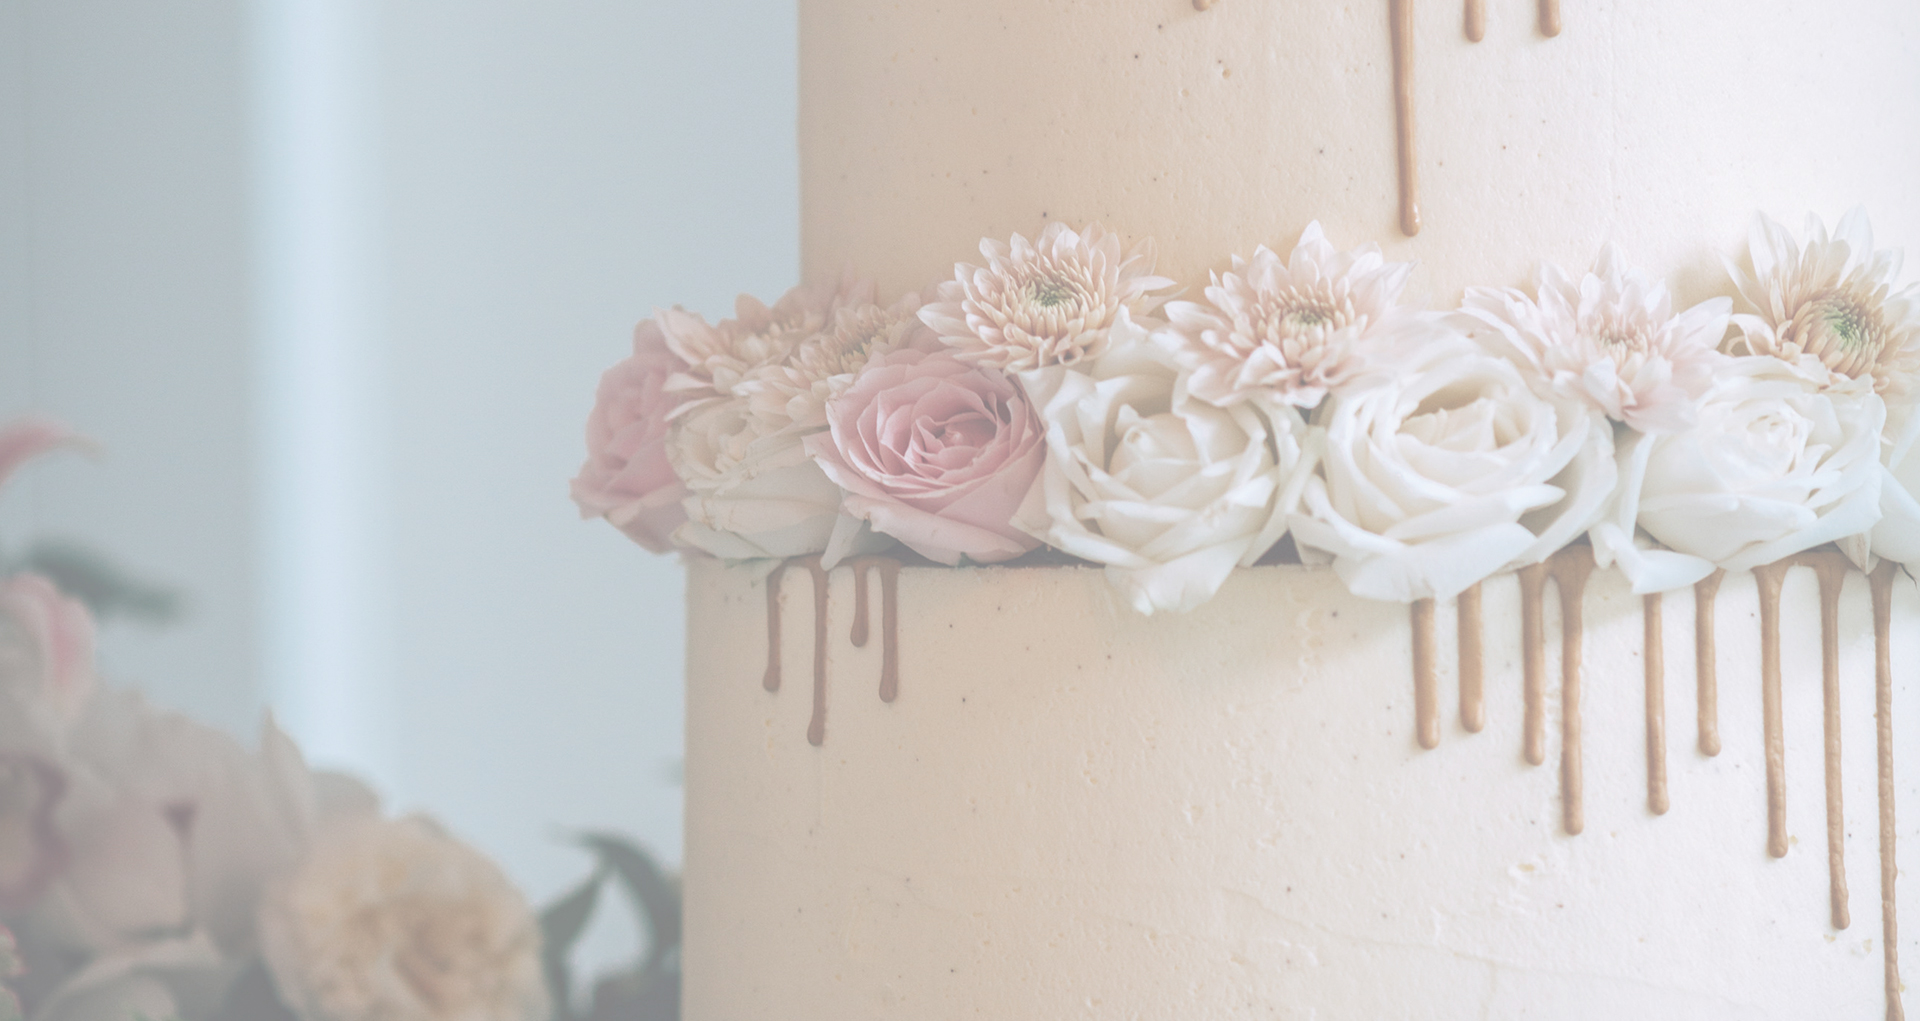 Rose Crafted Cakes Gallery